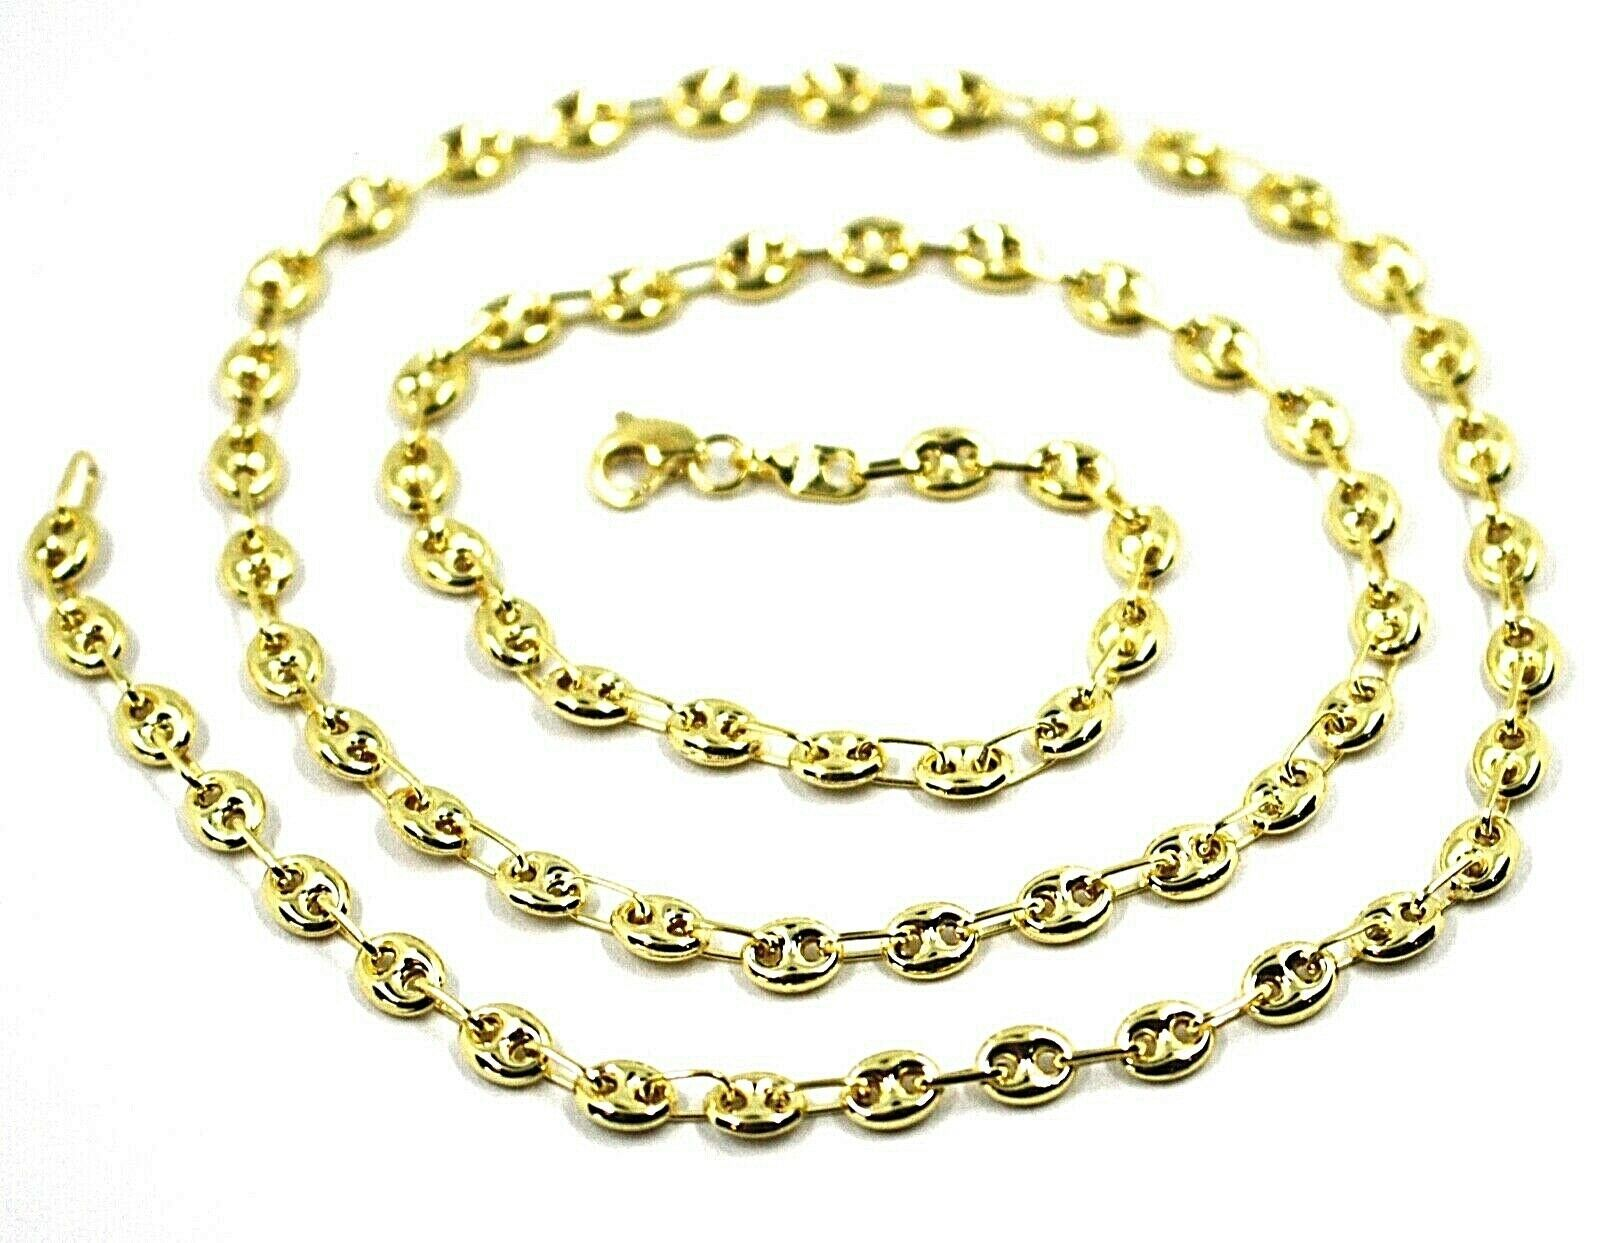 9K YELLOW GOLD NAUTICAL MARINER CHAIN OVALS 4 MM THICKNESS, 24 INCHES, 60 CM